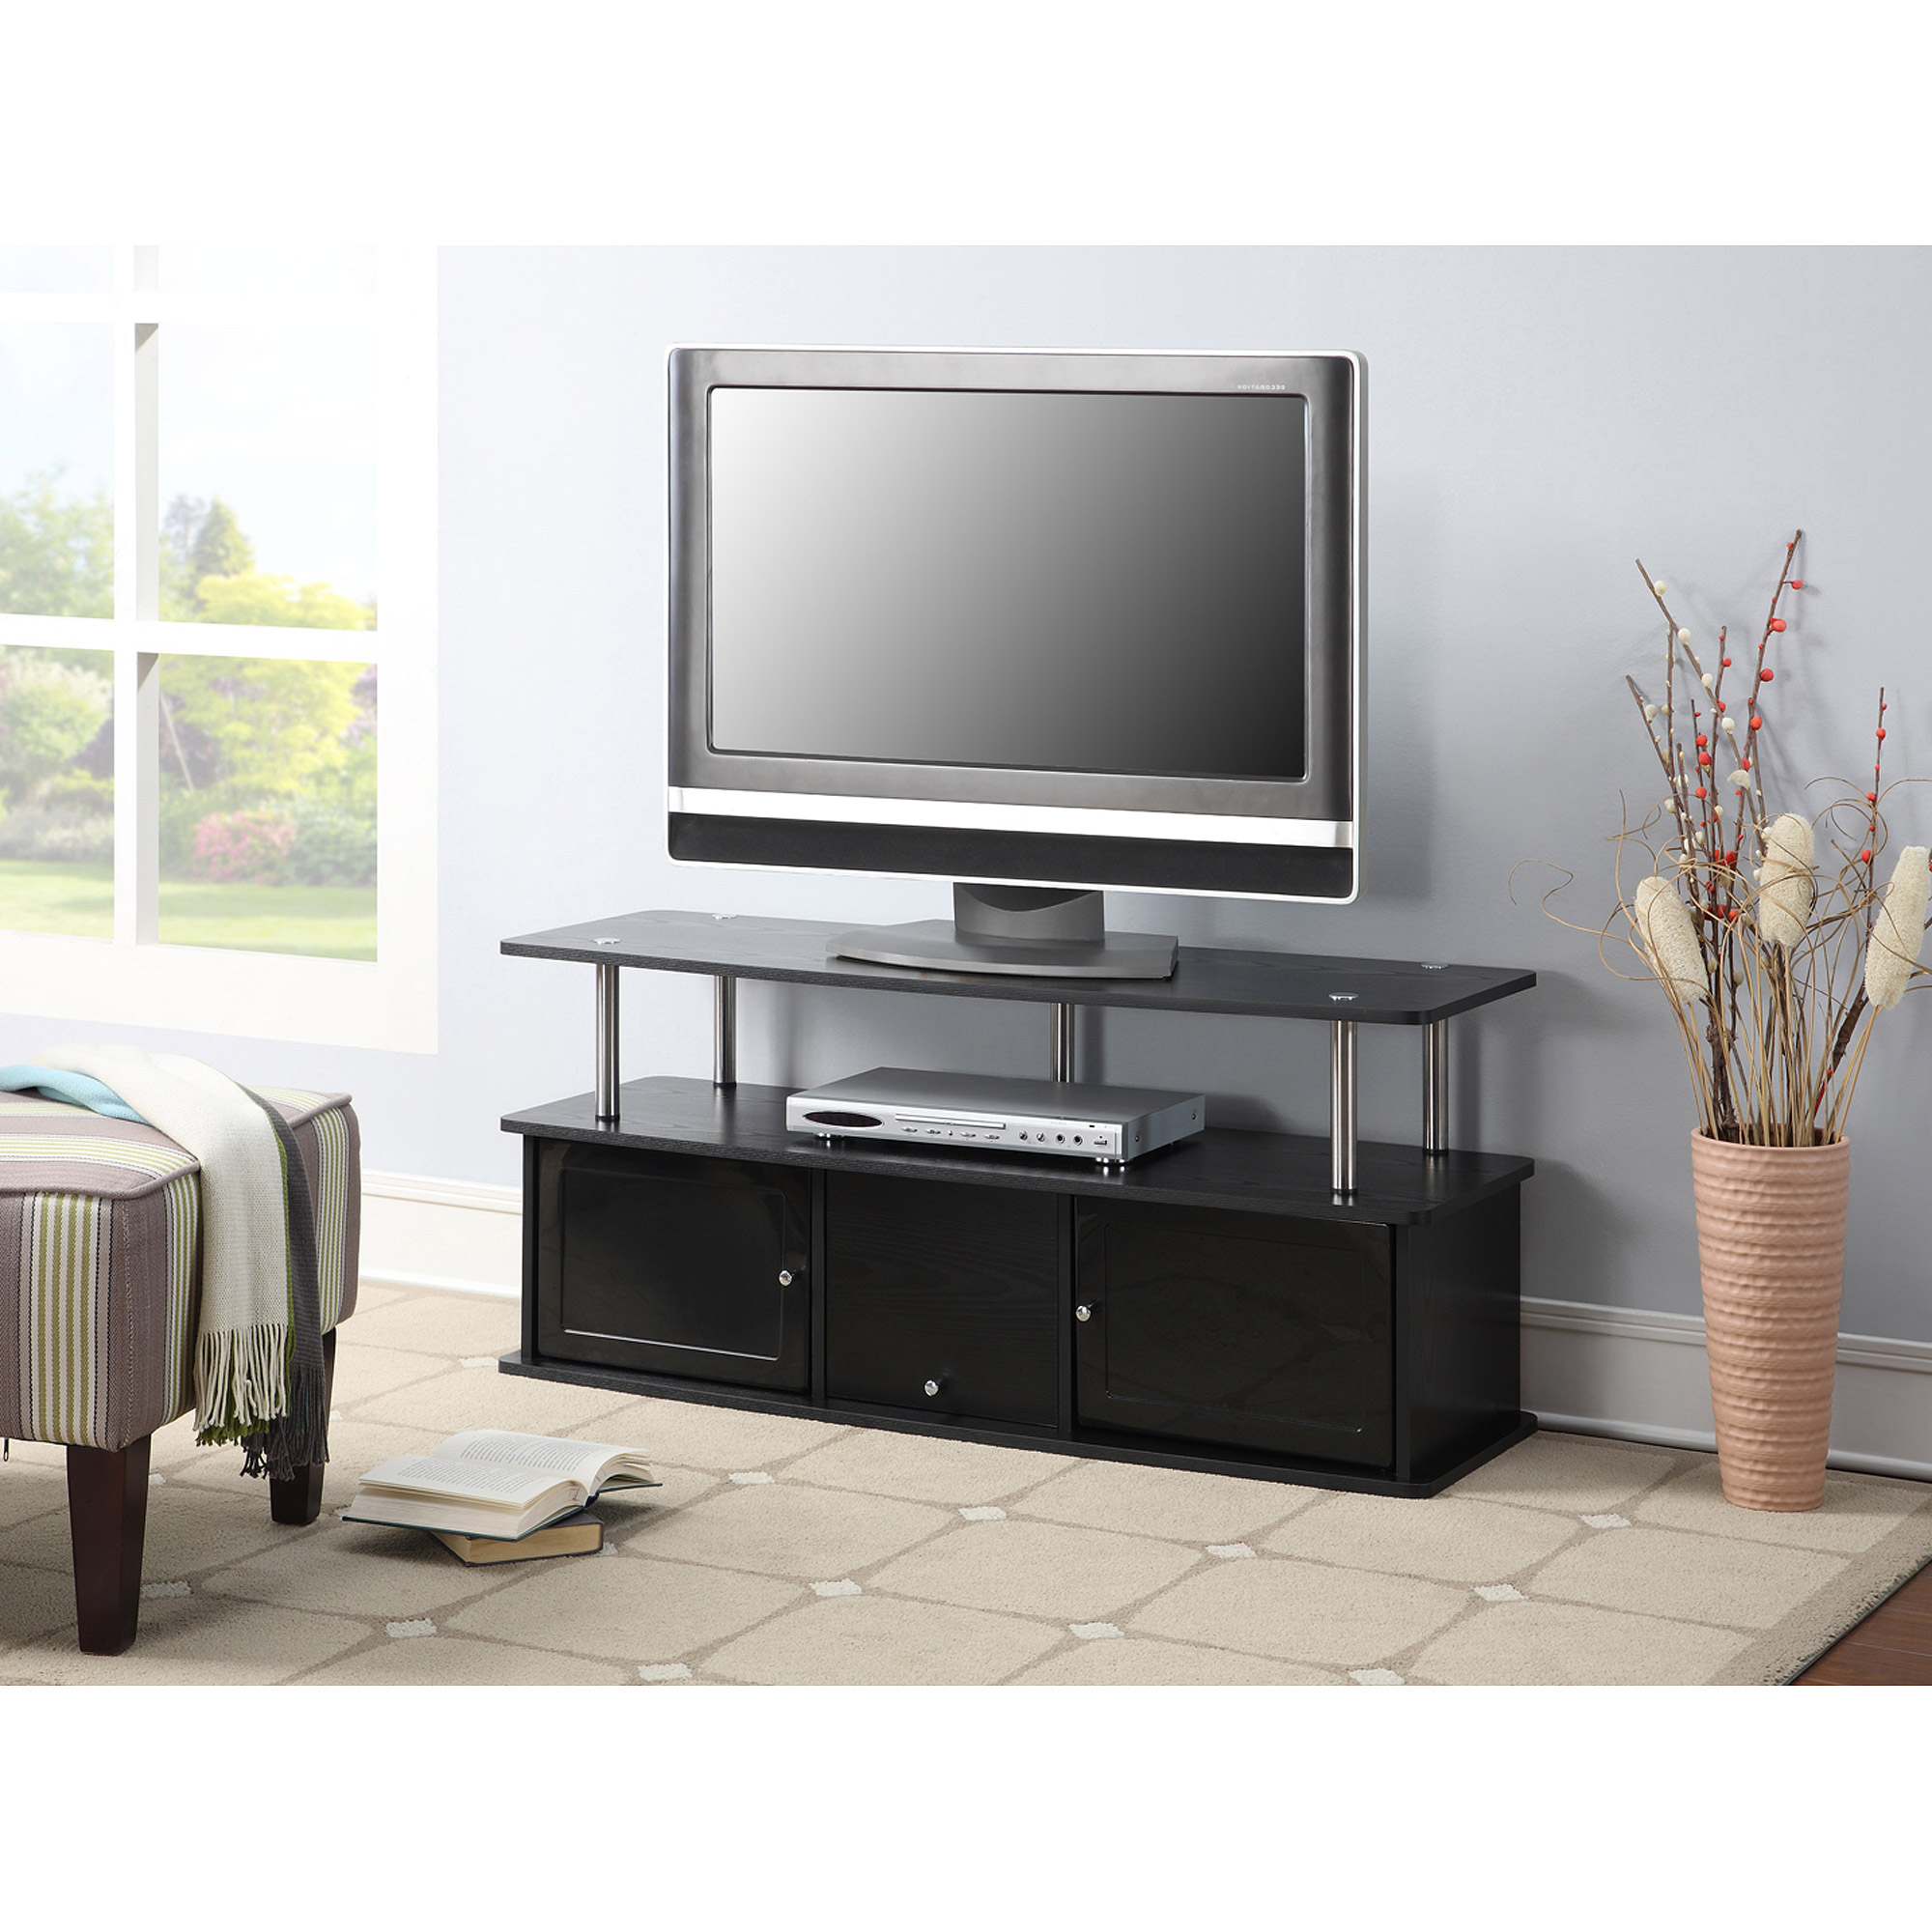 Newest Light Cherry Tv Stands Inside Tv Stands: Outstanding Cherry Tv Stand 2017 Design Sauder Tv Stand (Gallery 5 of 20)